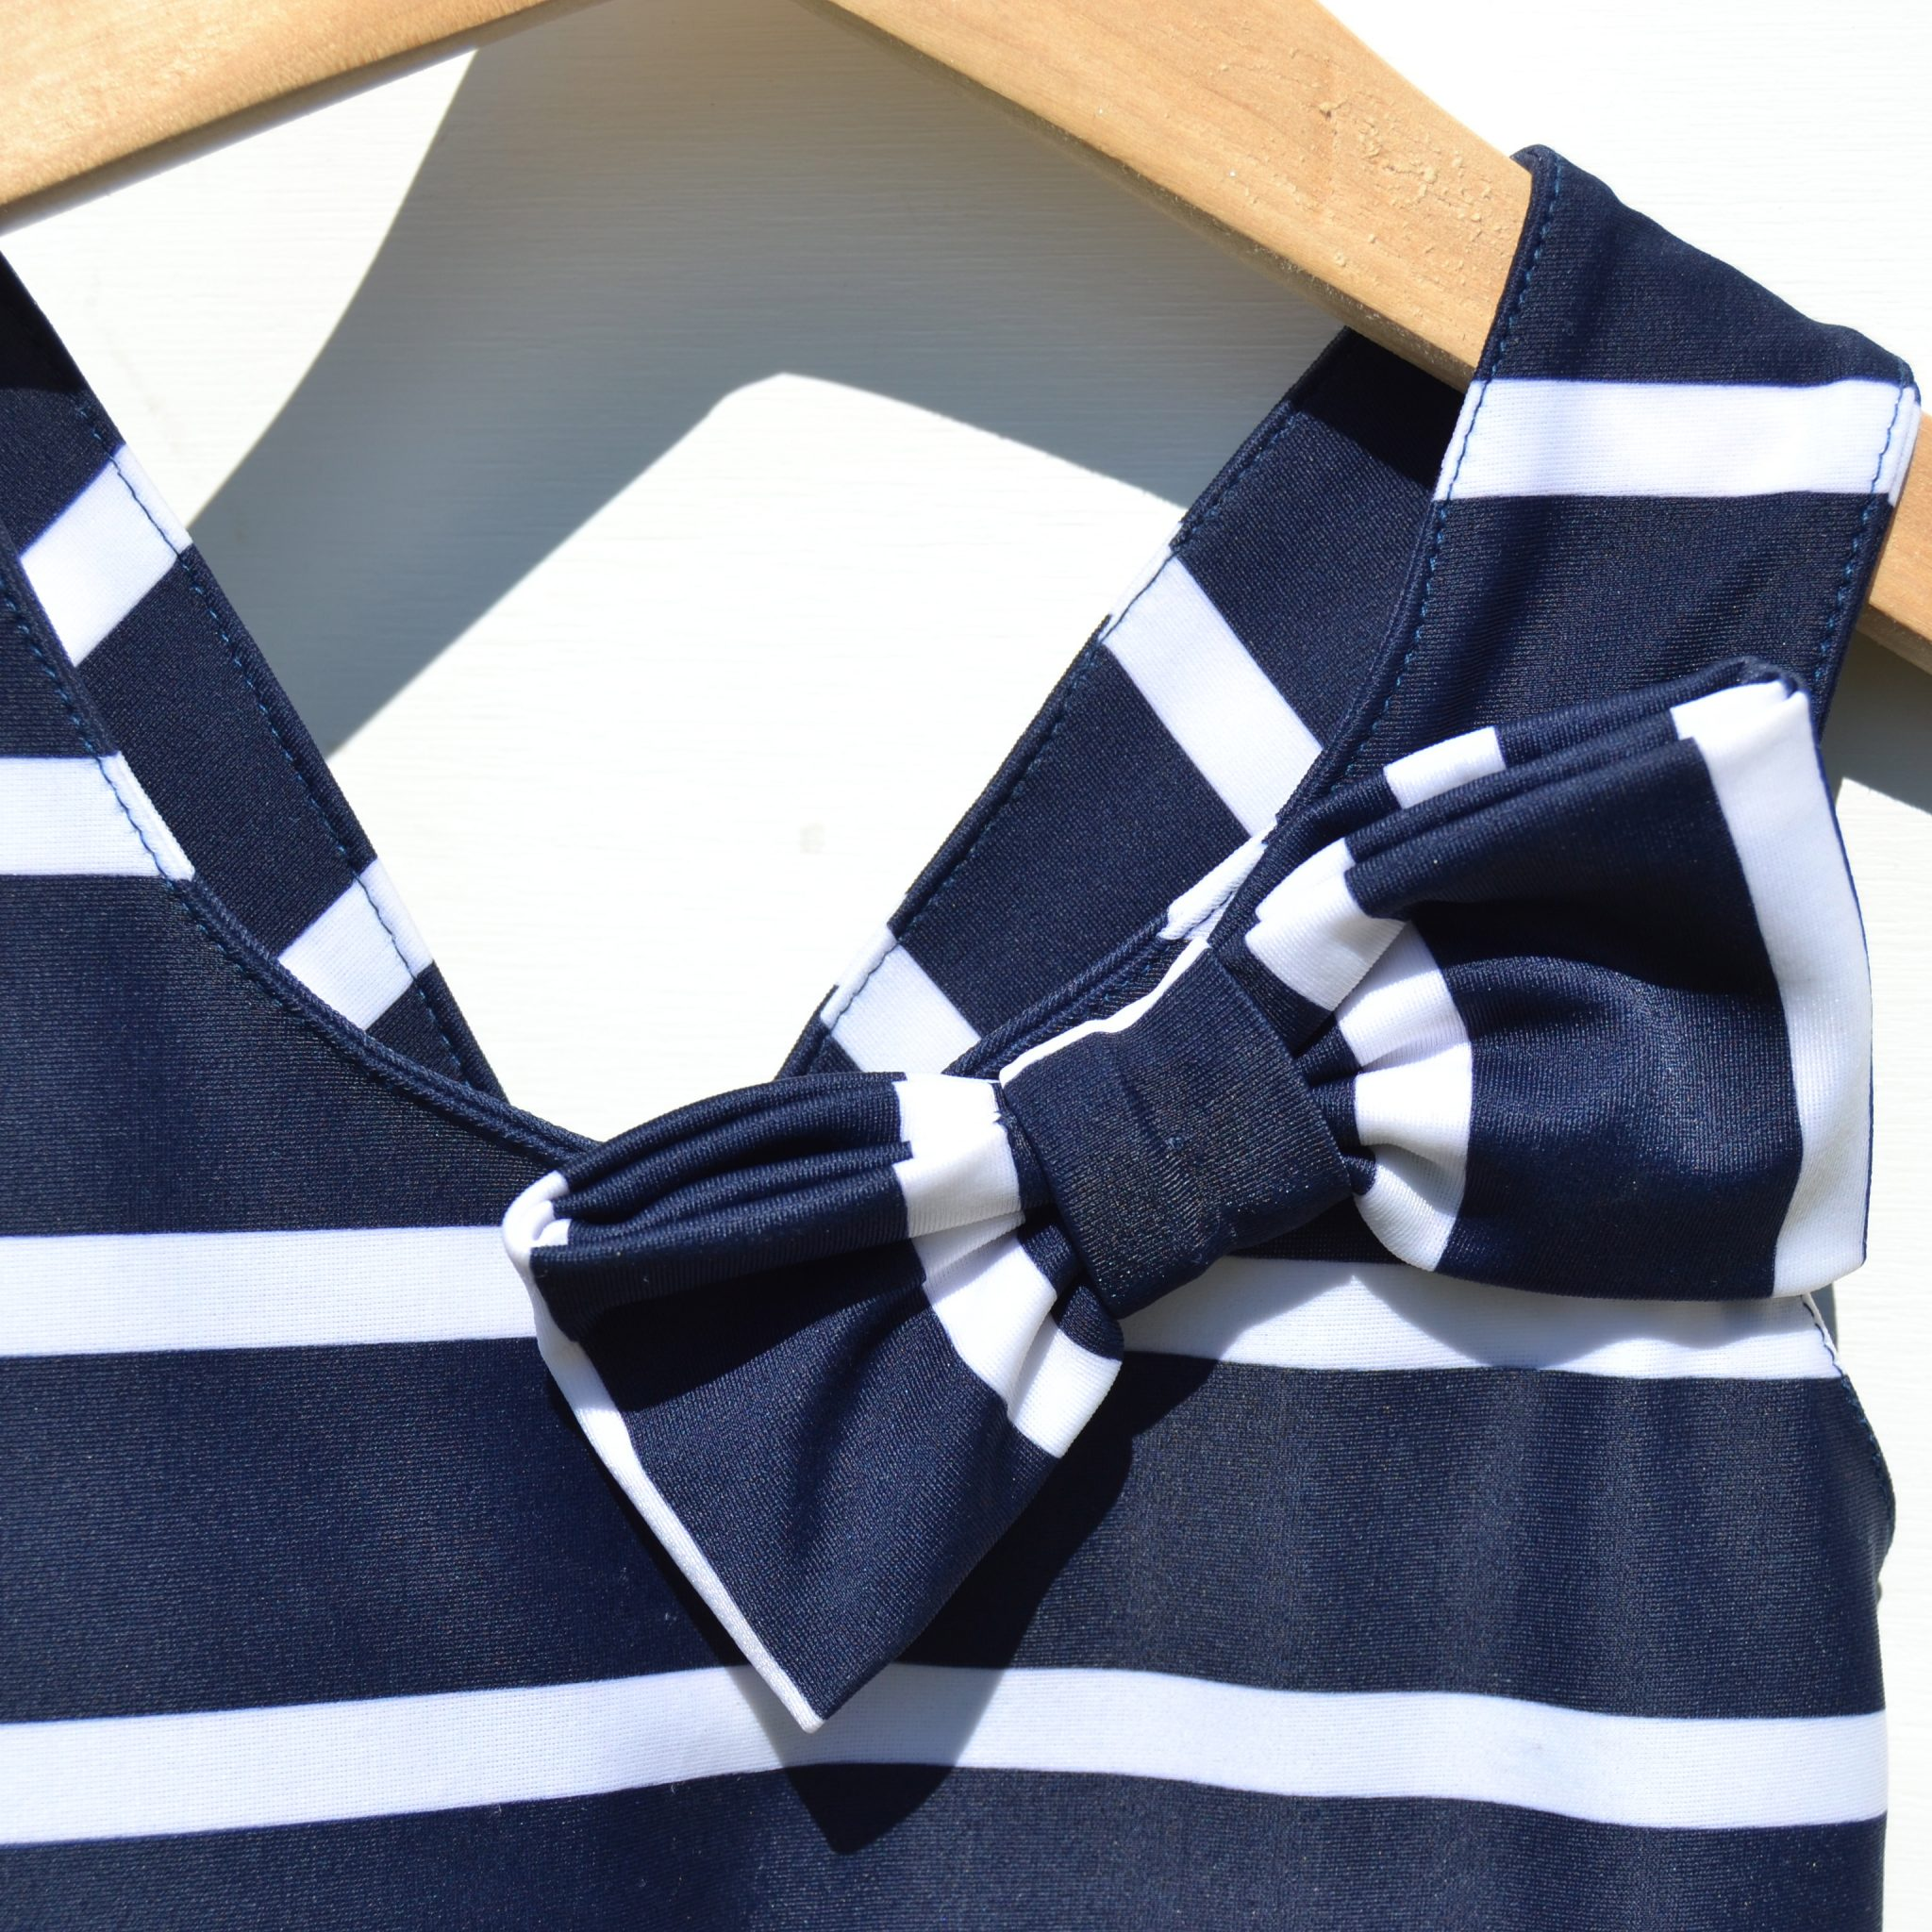 Petit Crabe cute bow detail on Elise Swimsuit for girls, sun protective swimwear for kids.